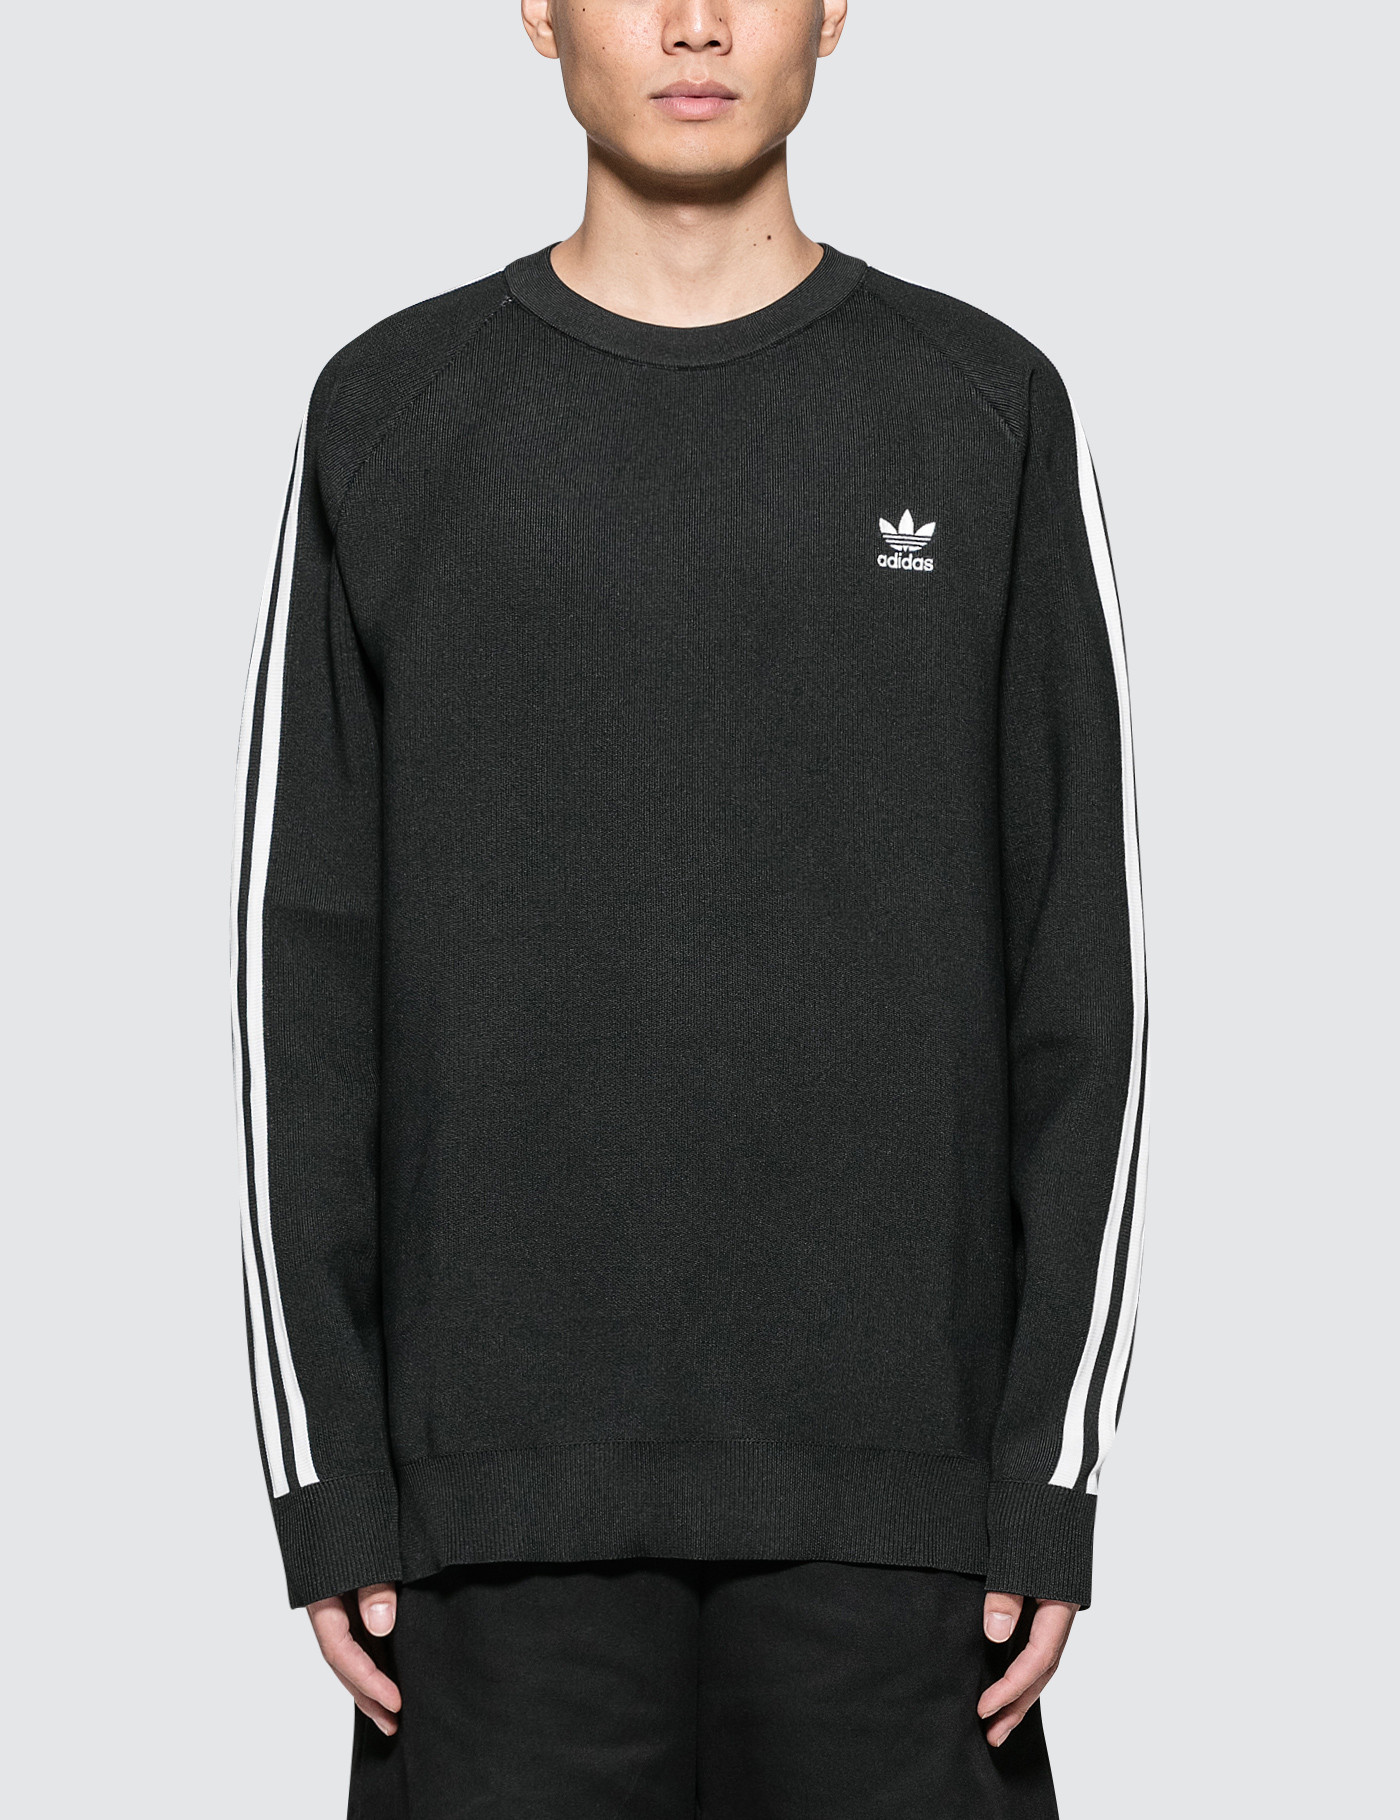 Knit Sweater, Adidas Originals